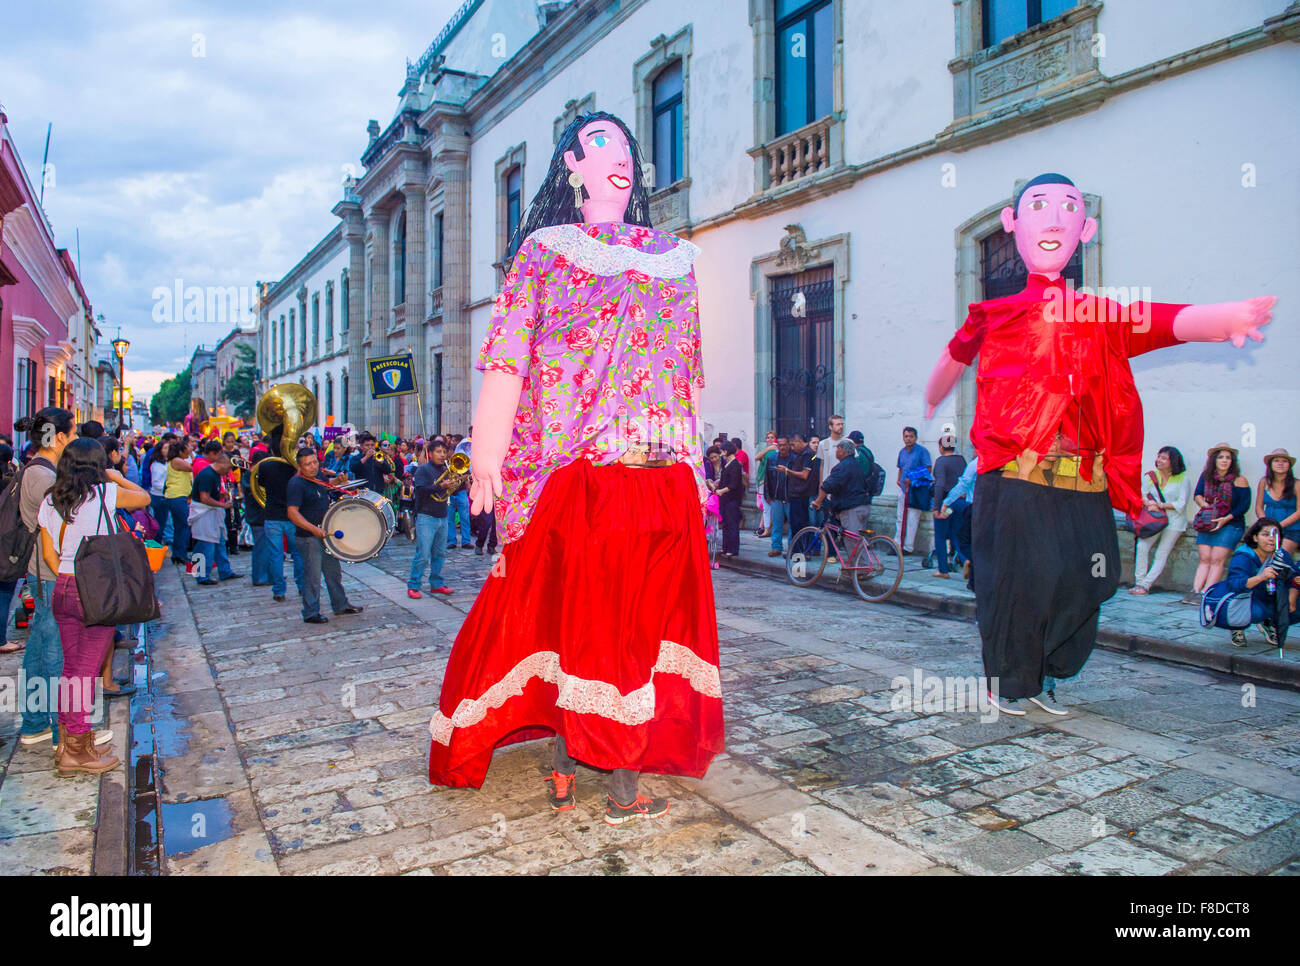 Mojigangas at the carnival of the Day of the Dead in Oaxaca, Mexico - Stock Image